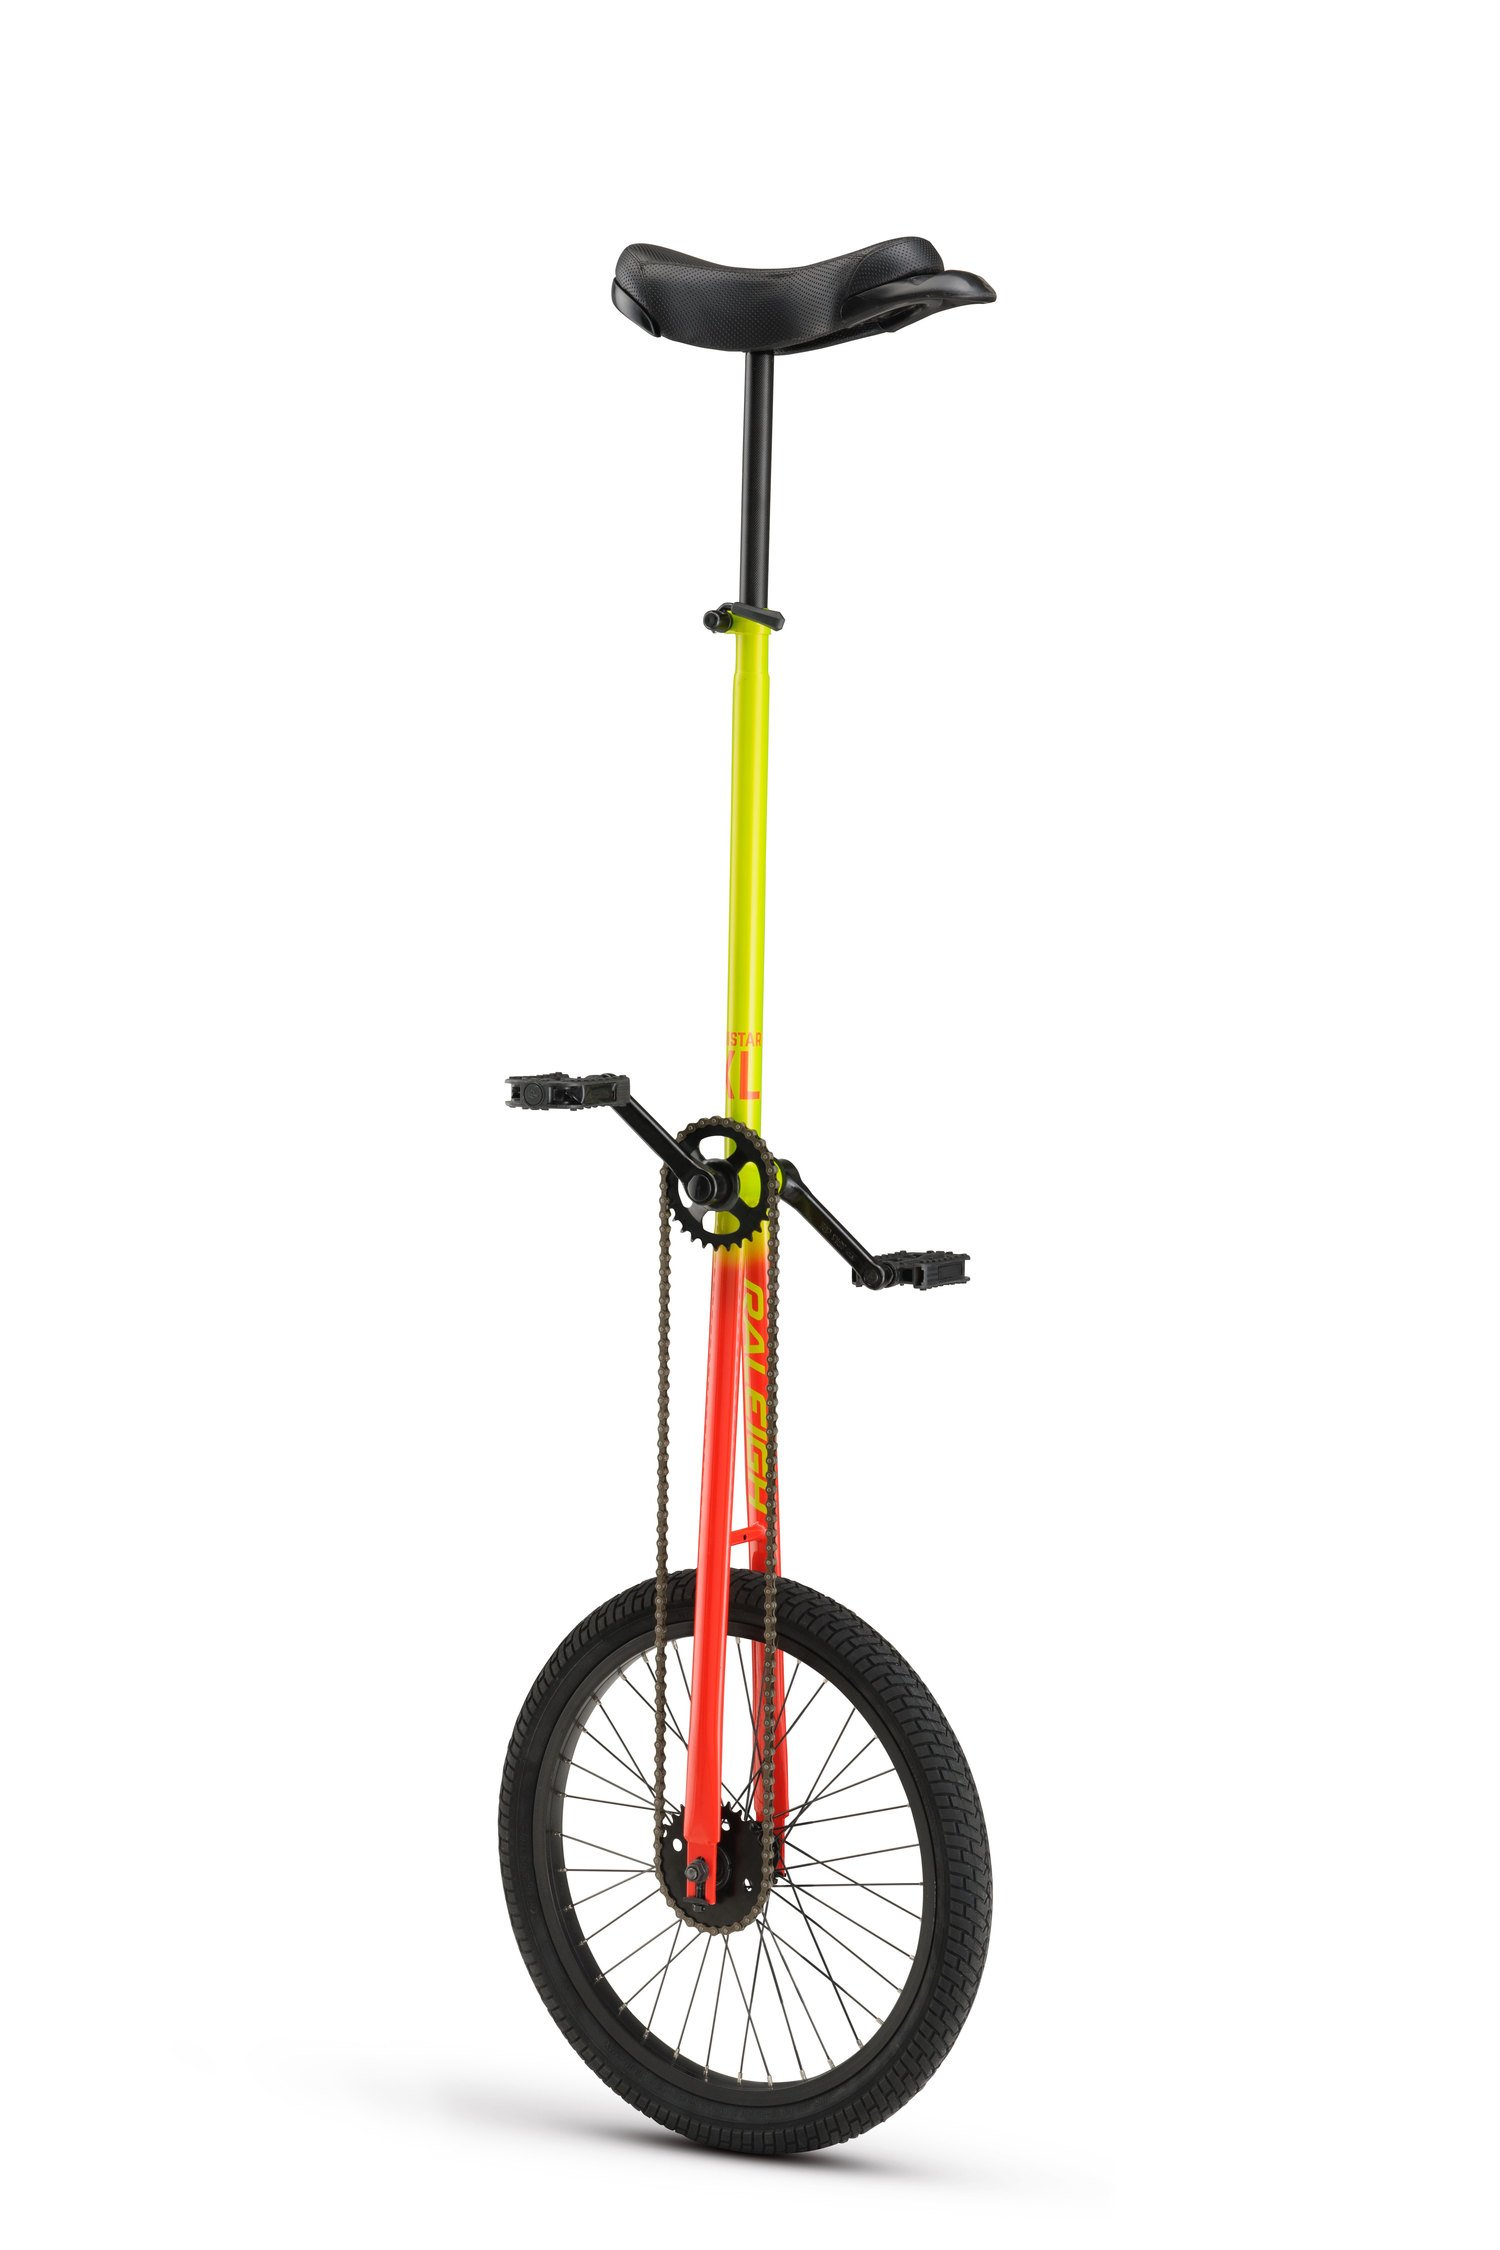 Unistar XL 20, 20inch Wheel Unicycle, Yellow by Diamondback Bicycles